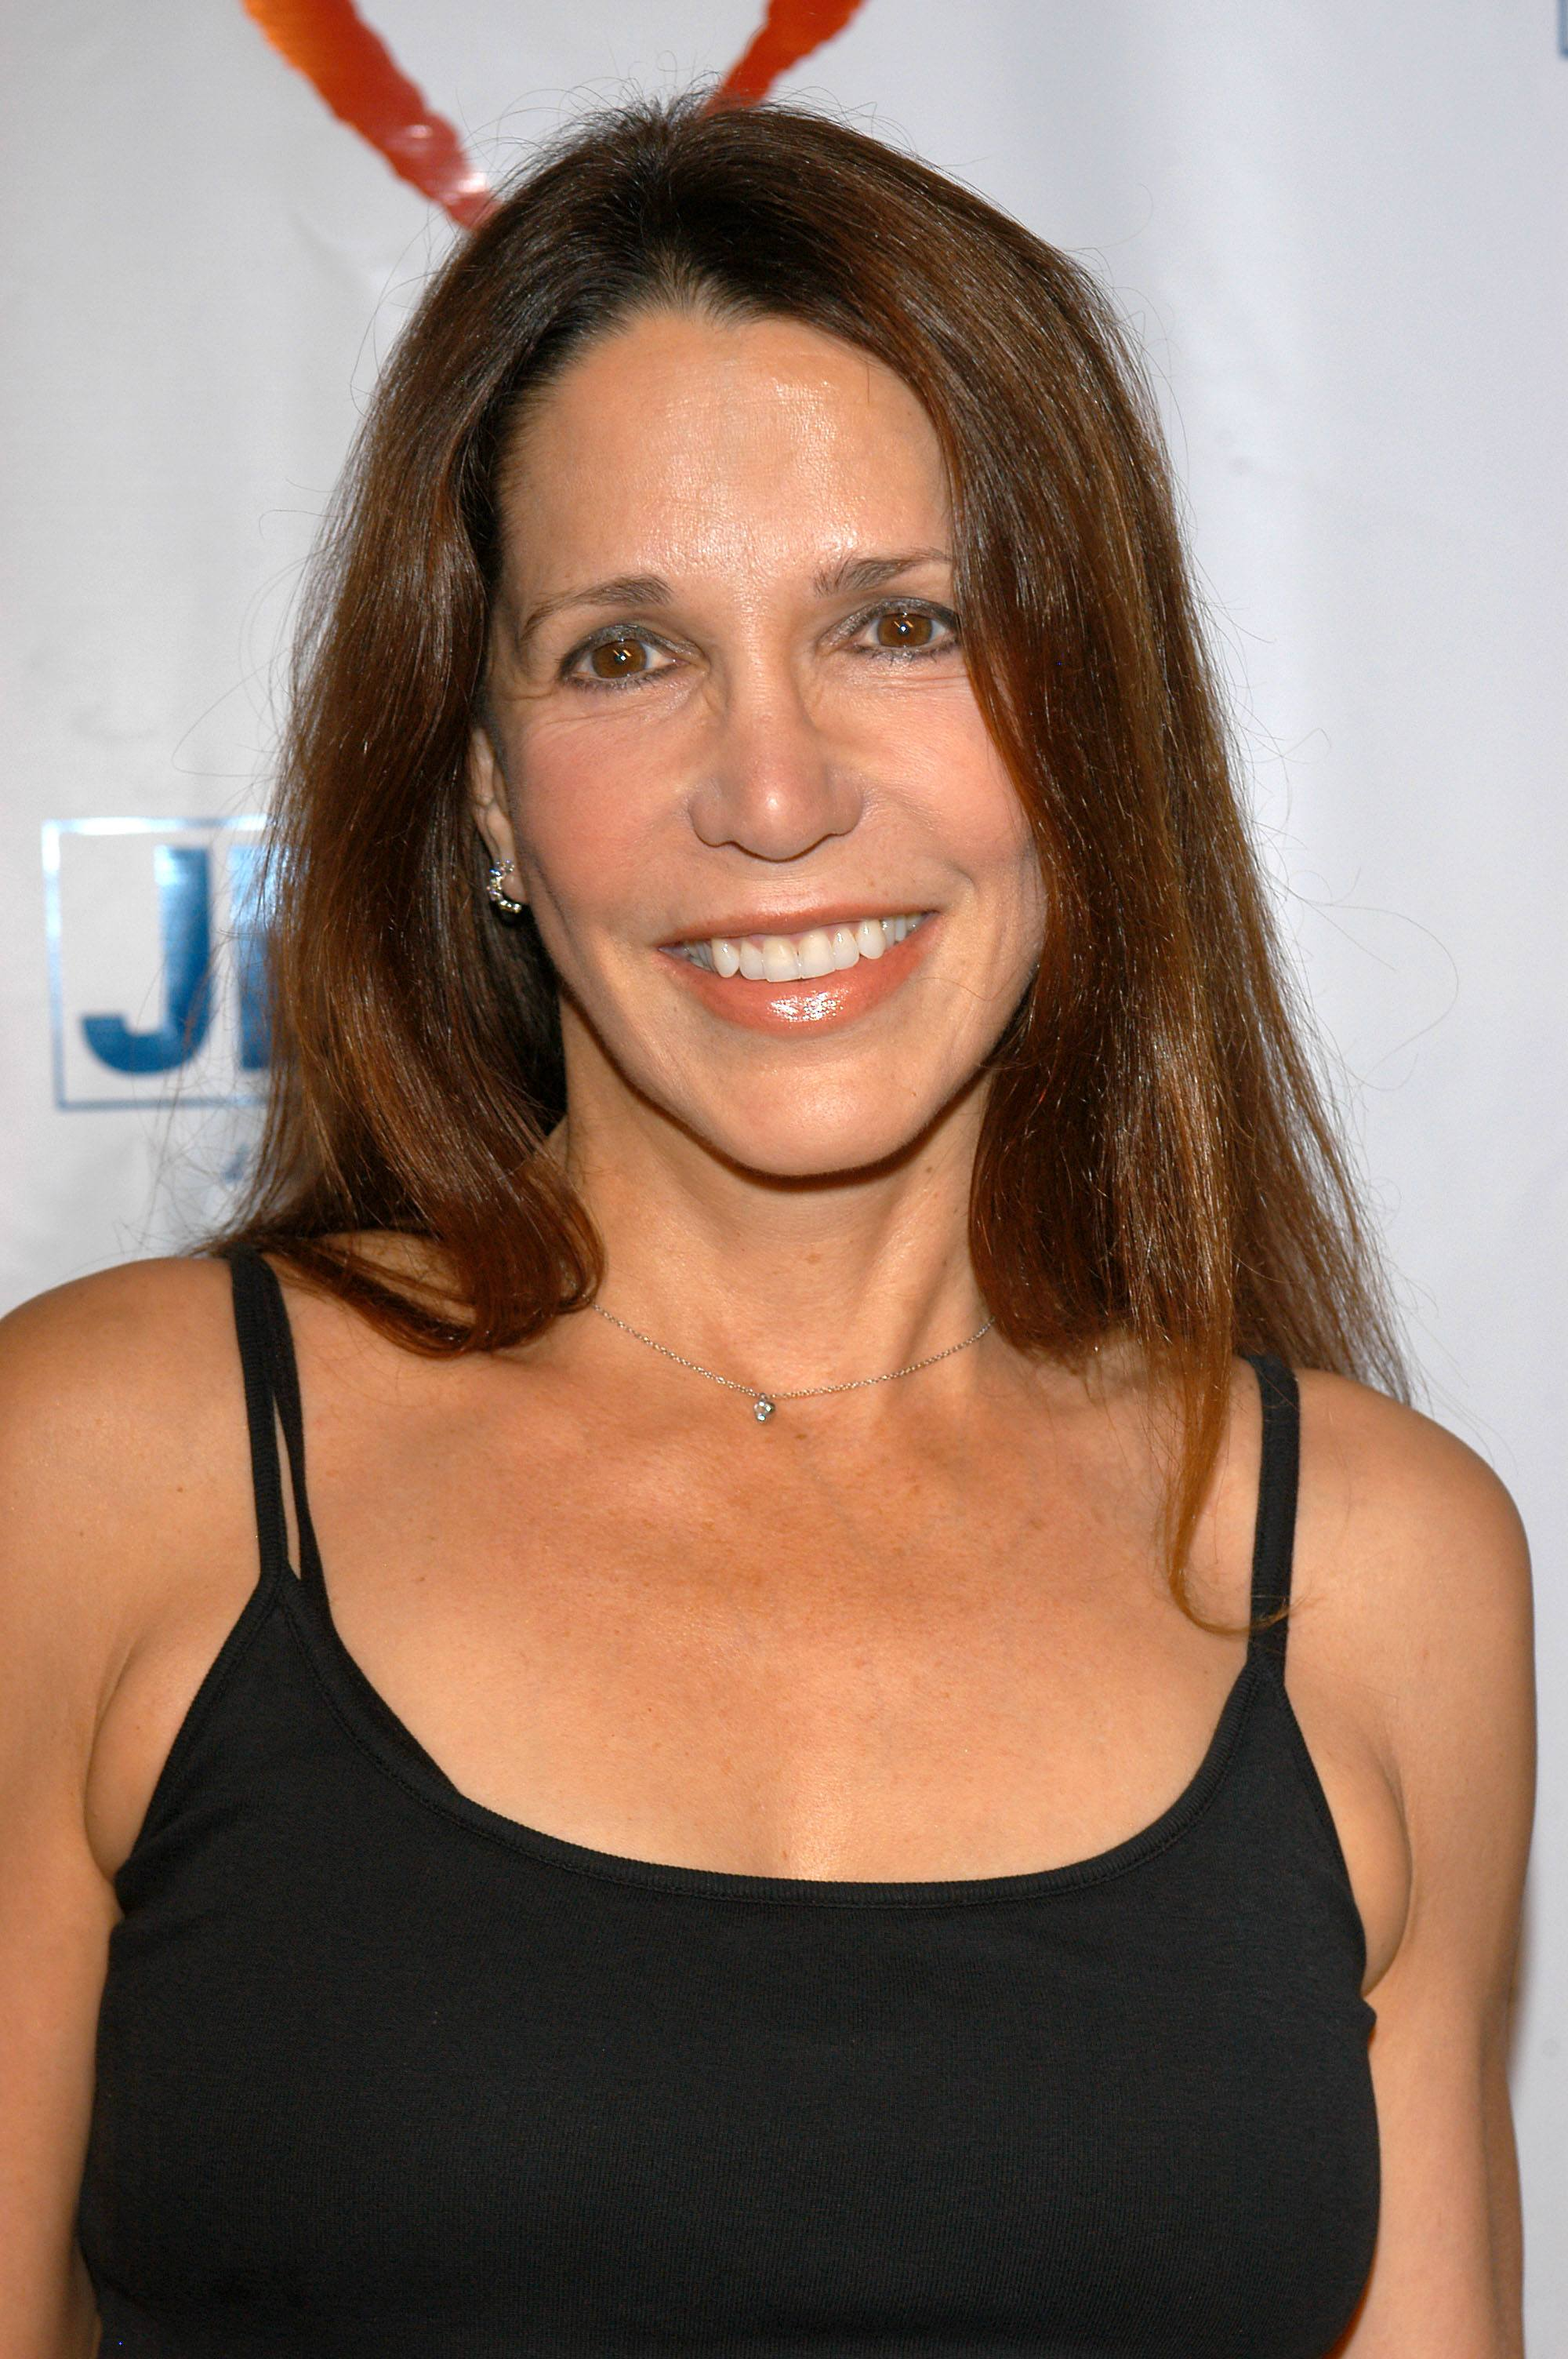 Ronald Reagan's daughter Patti Davis